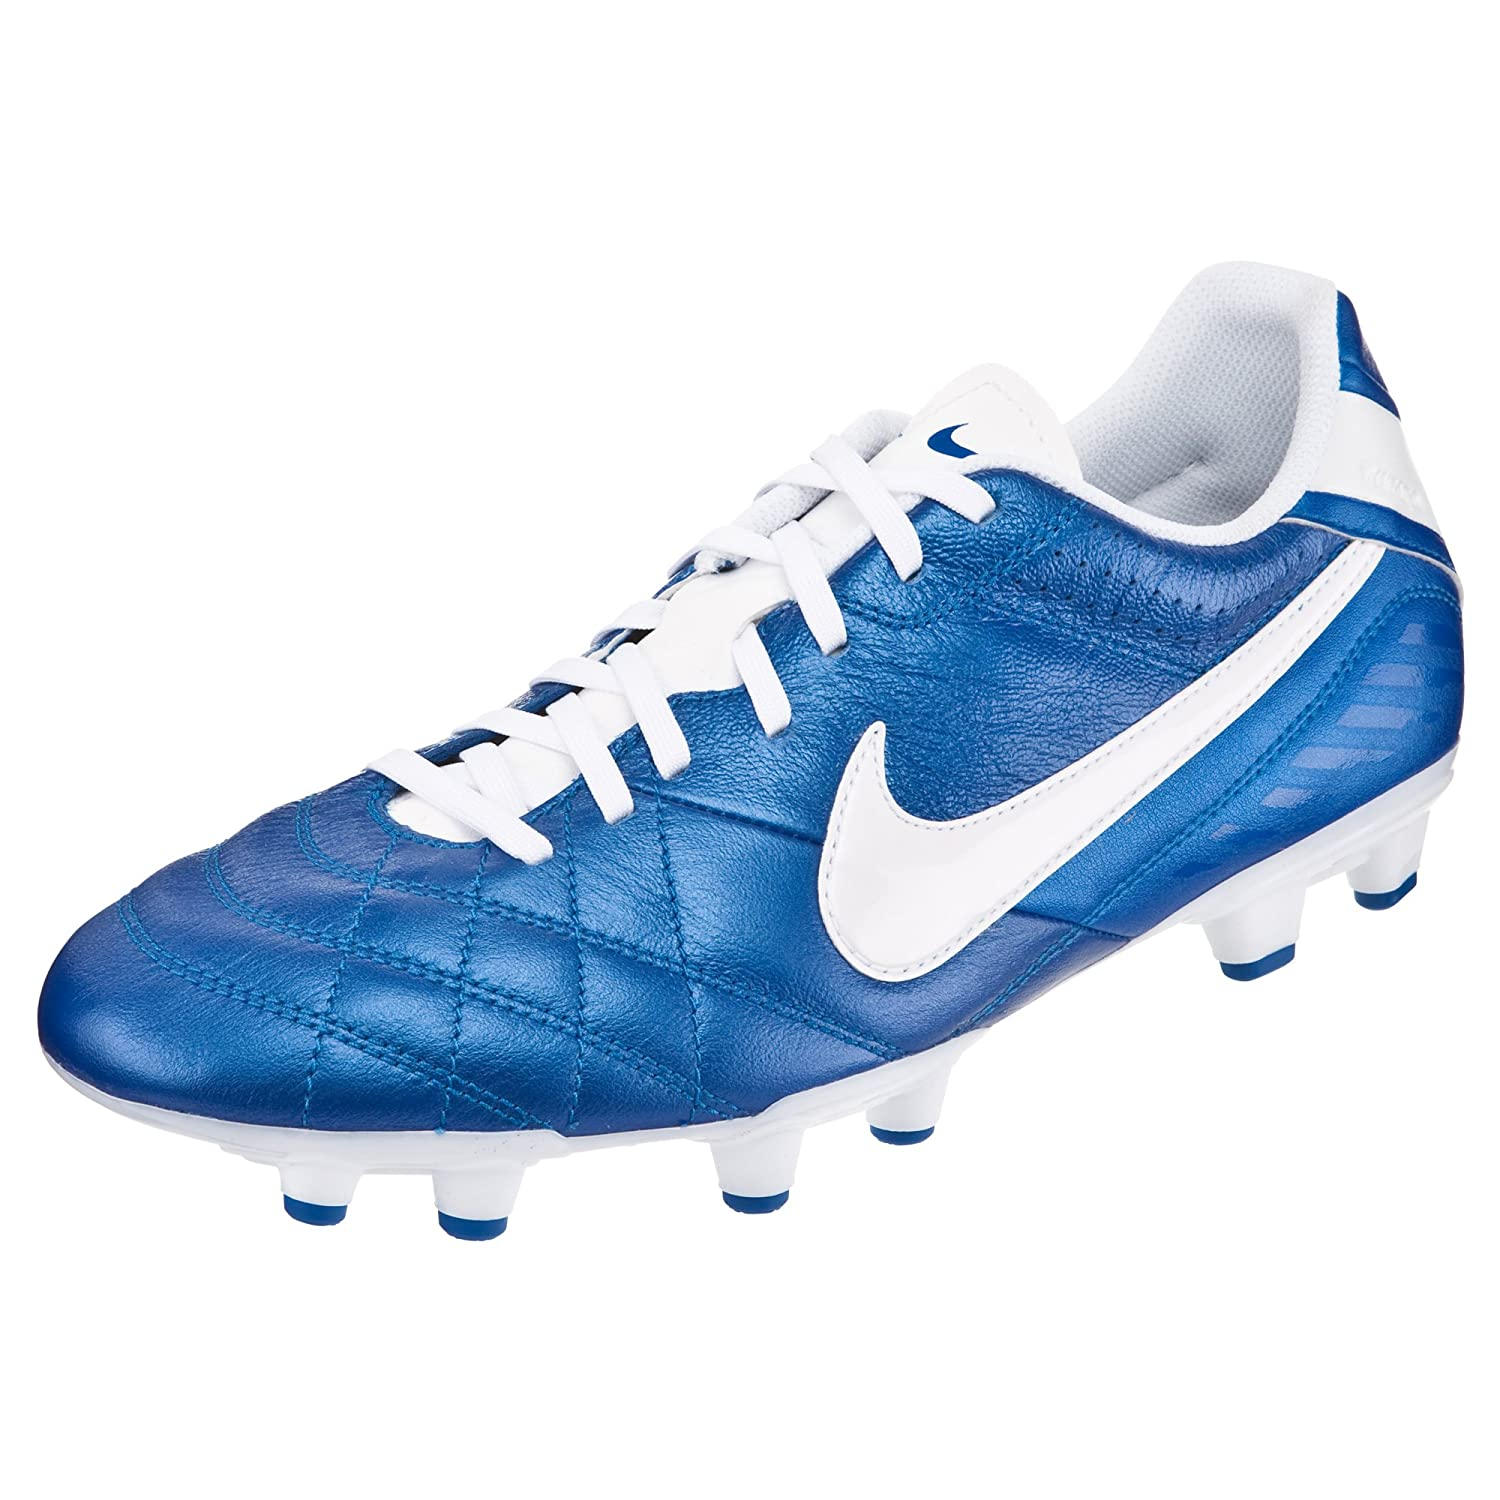 Inconveniencia Abuso Ejercicio  Nike Tiempo Natural IV LTR FG Shoes 509085-419-Size-11 UK: Buy Online at  Low Prices in India - Amazon.in